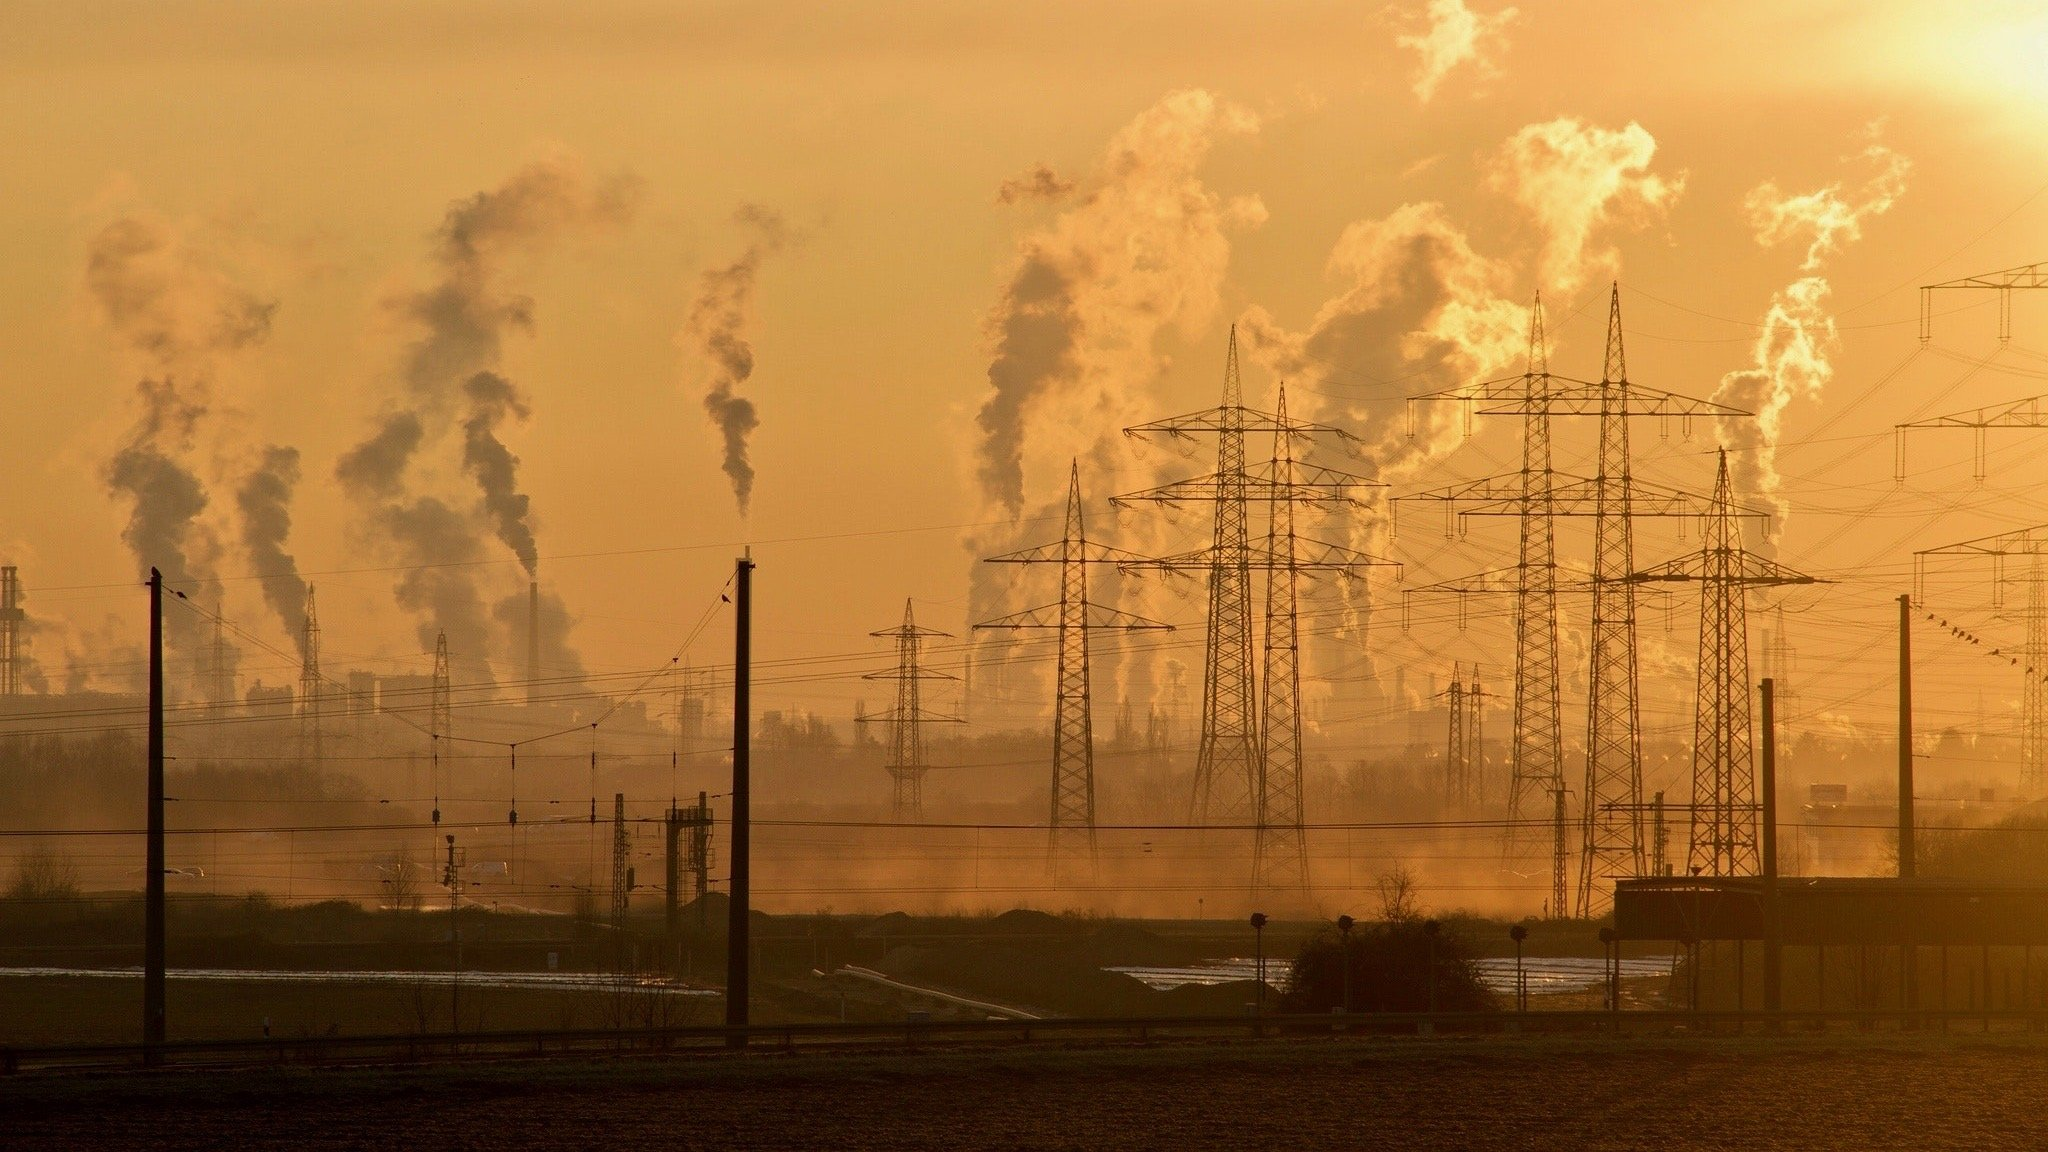 Scientists Show How Fossil Fuel Industry Deceived the Public About the